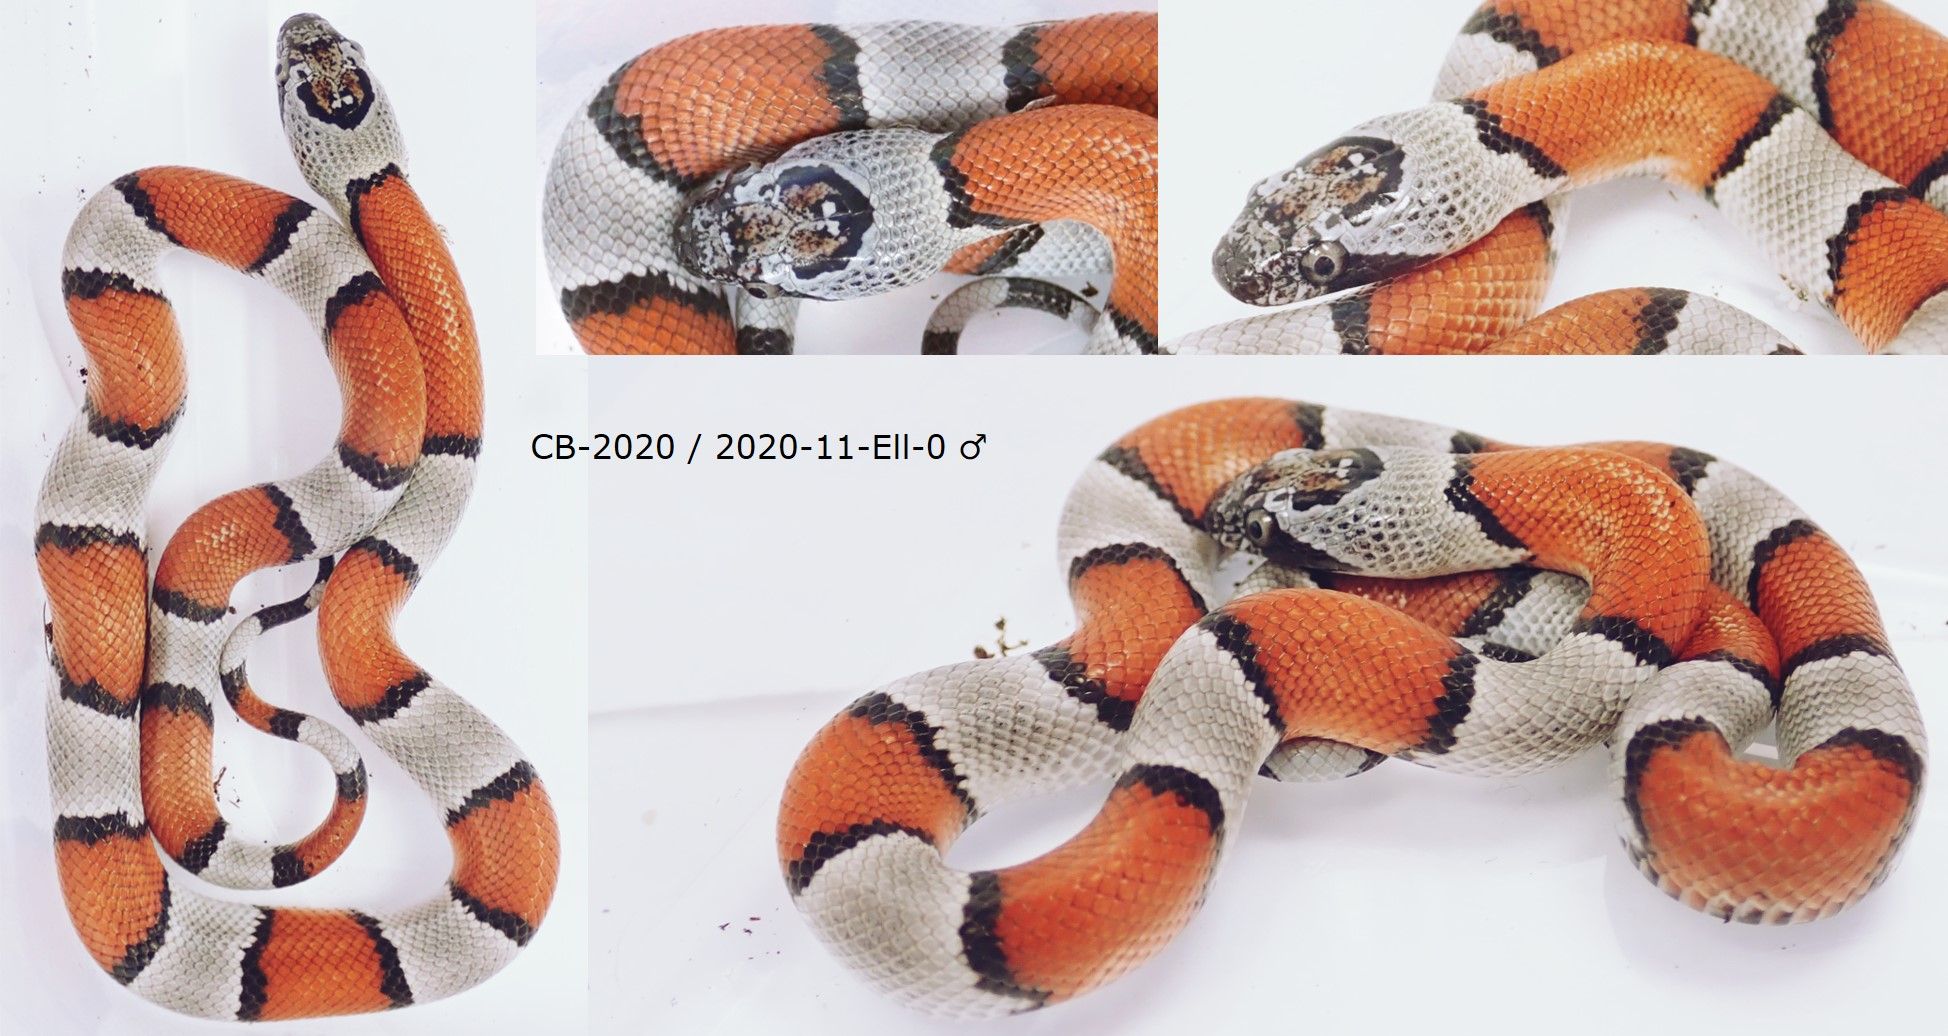 Lampropeltis alterna blairi Offspring 2020